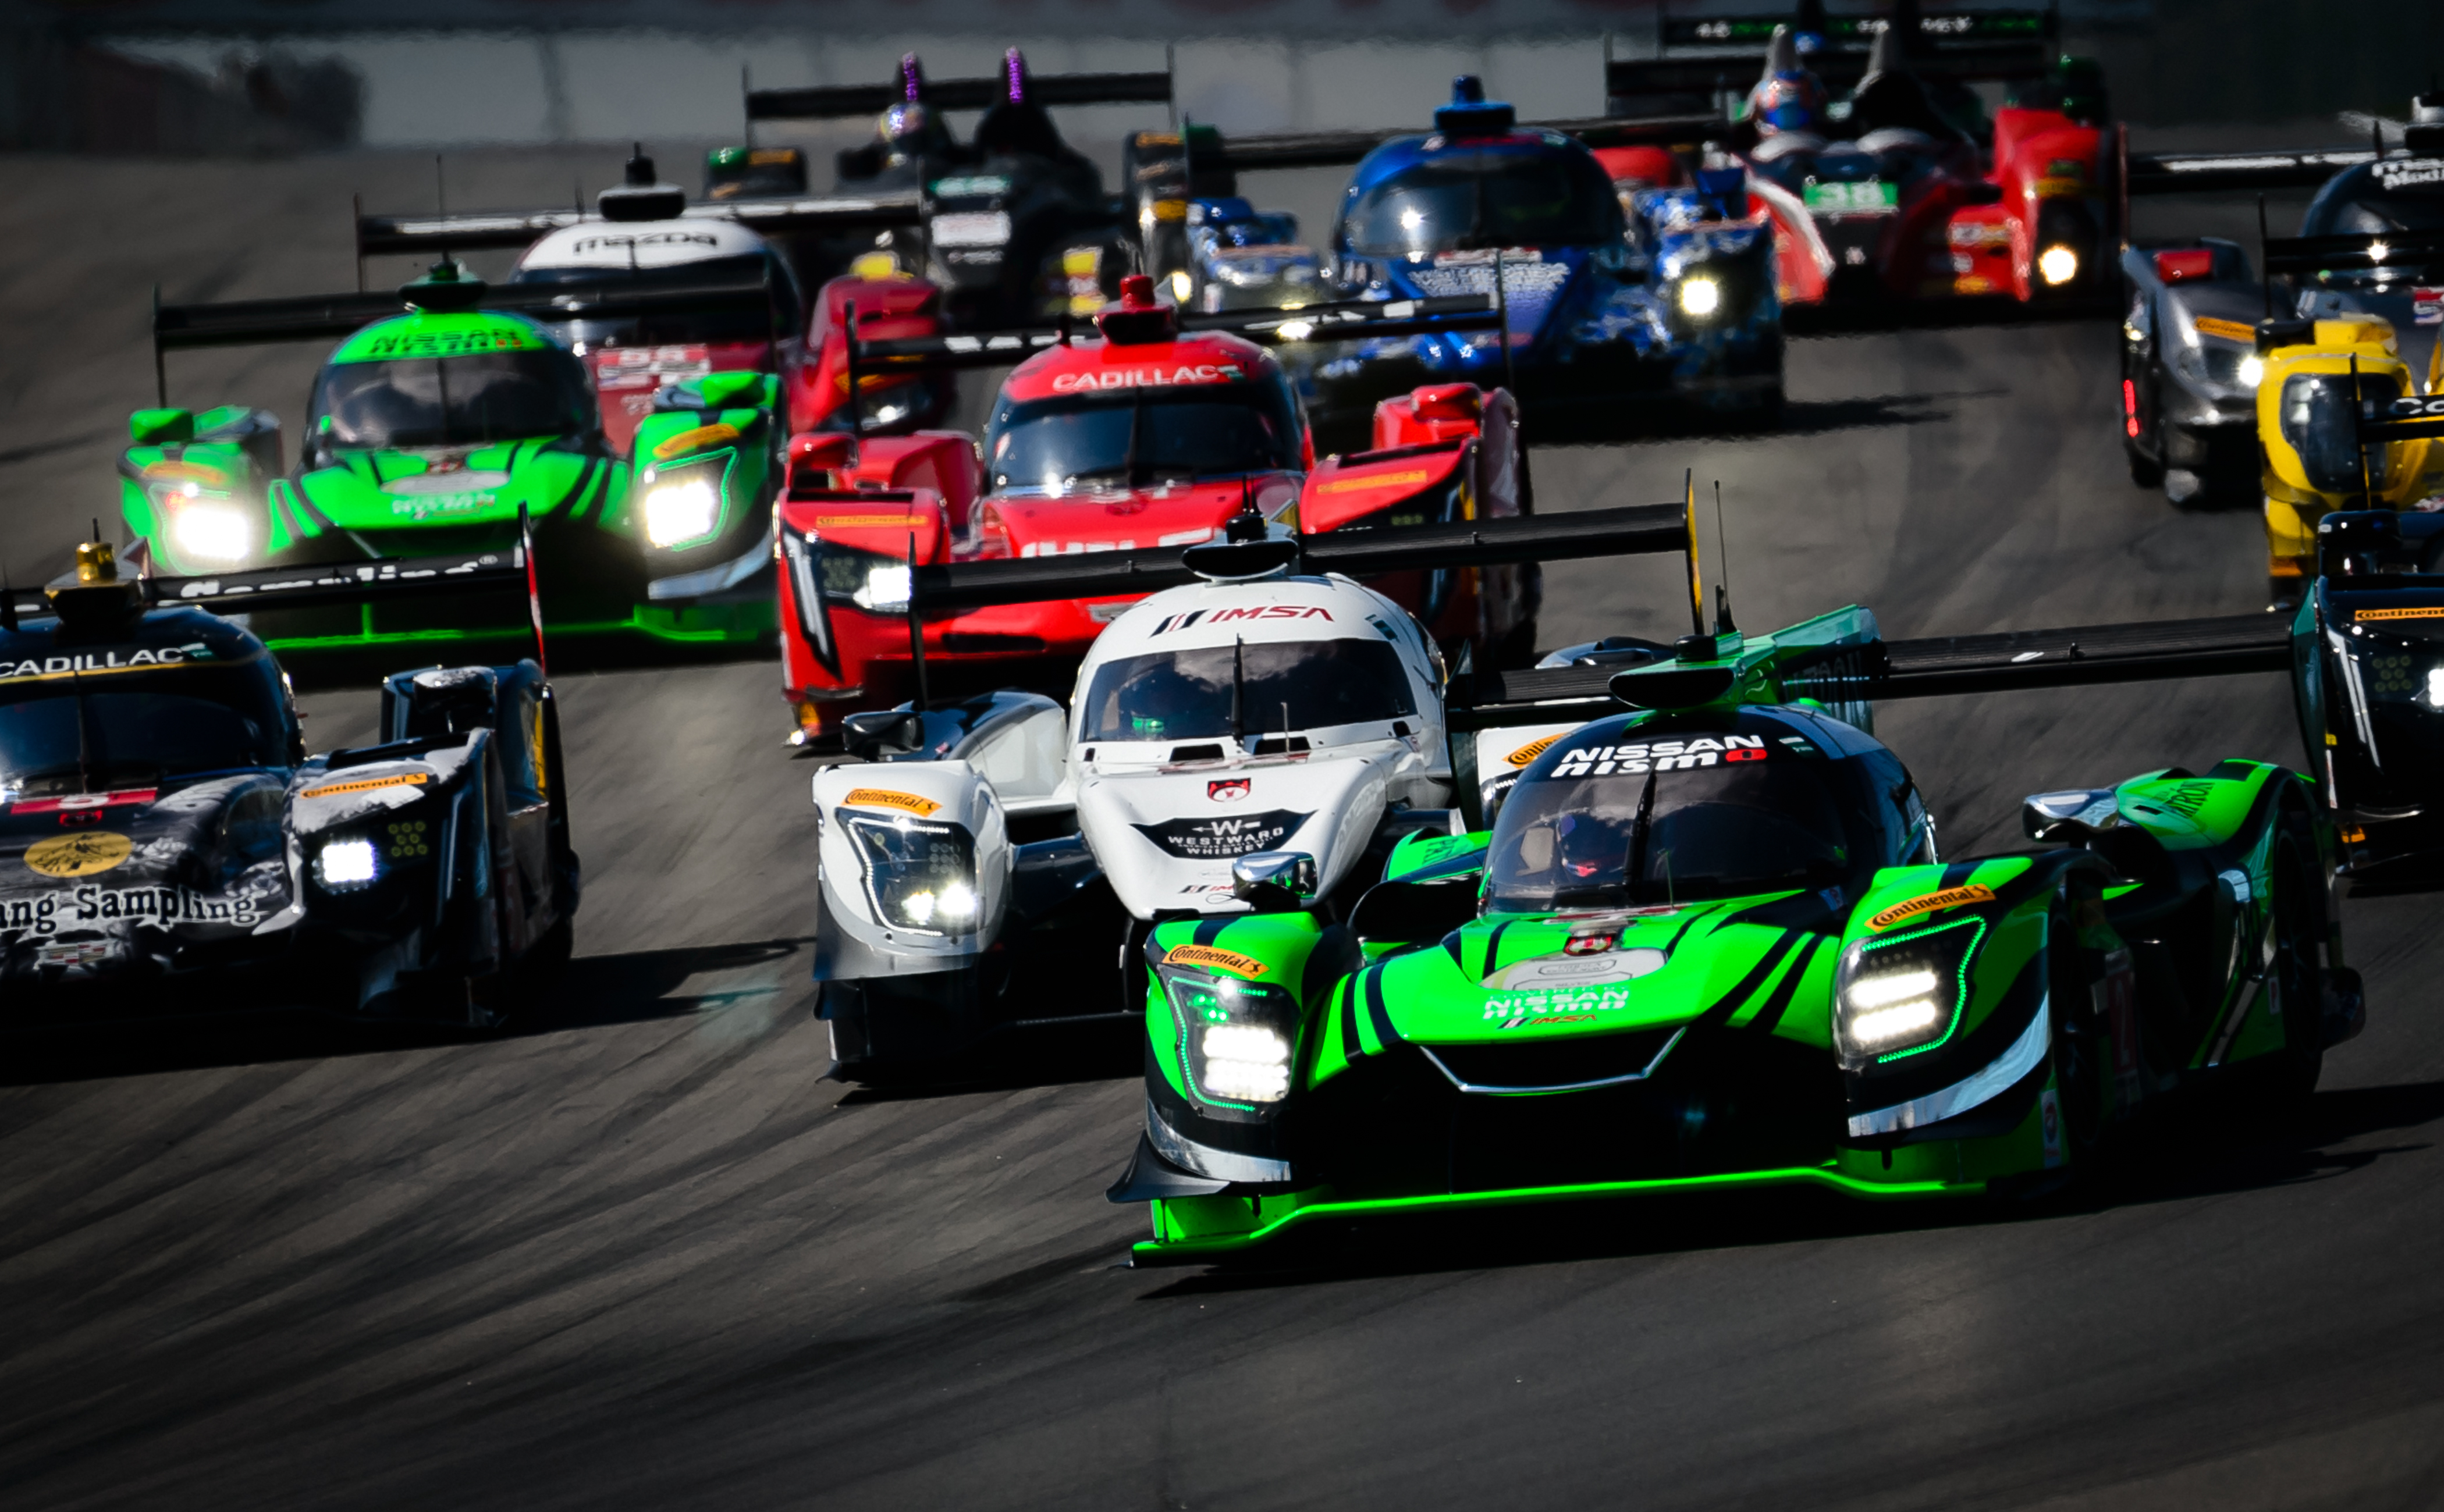 Podium Hopes End in Heartbreak for Tequila Patrón ESM